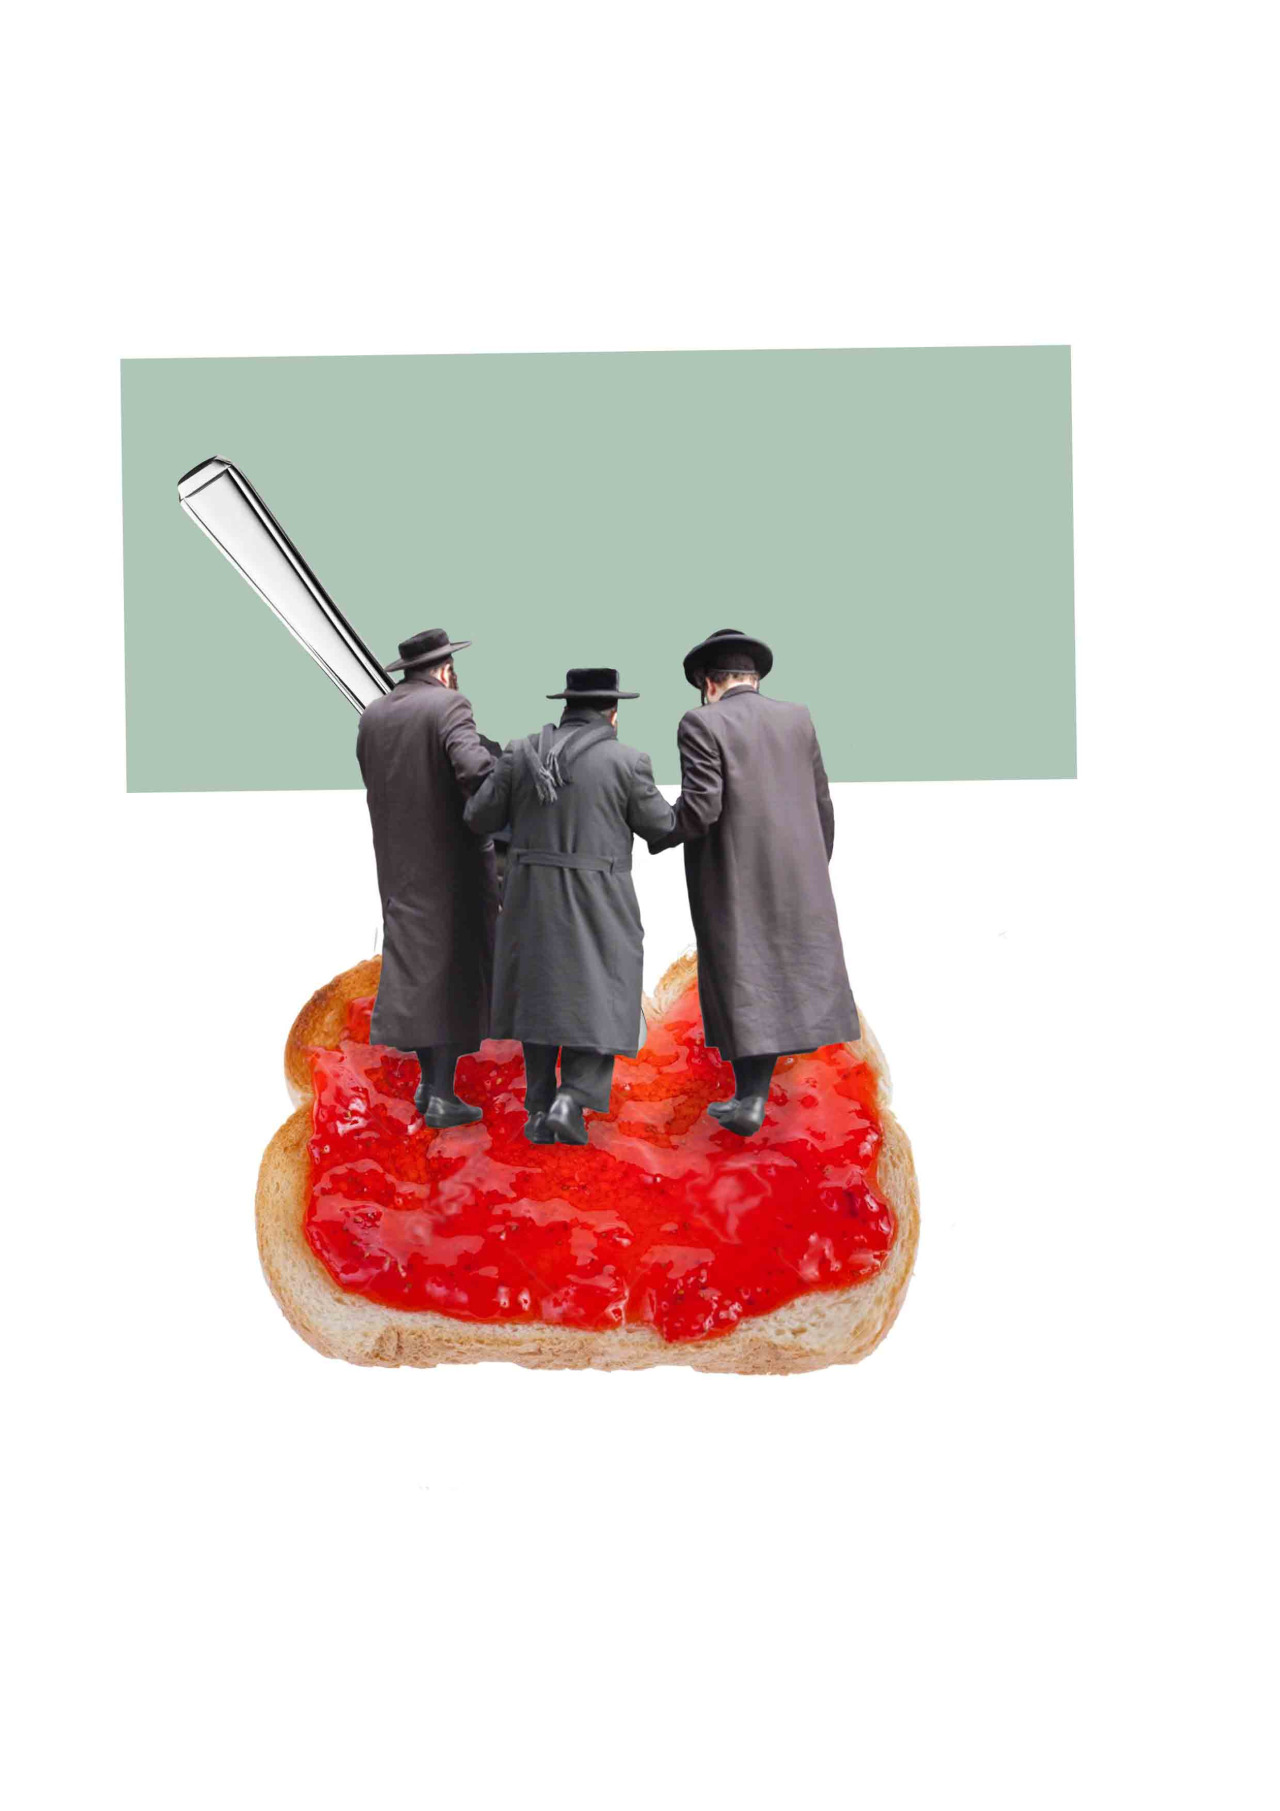 'Three jews on jam on toast' - Chloe Dowsett 04//08//2015